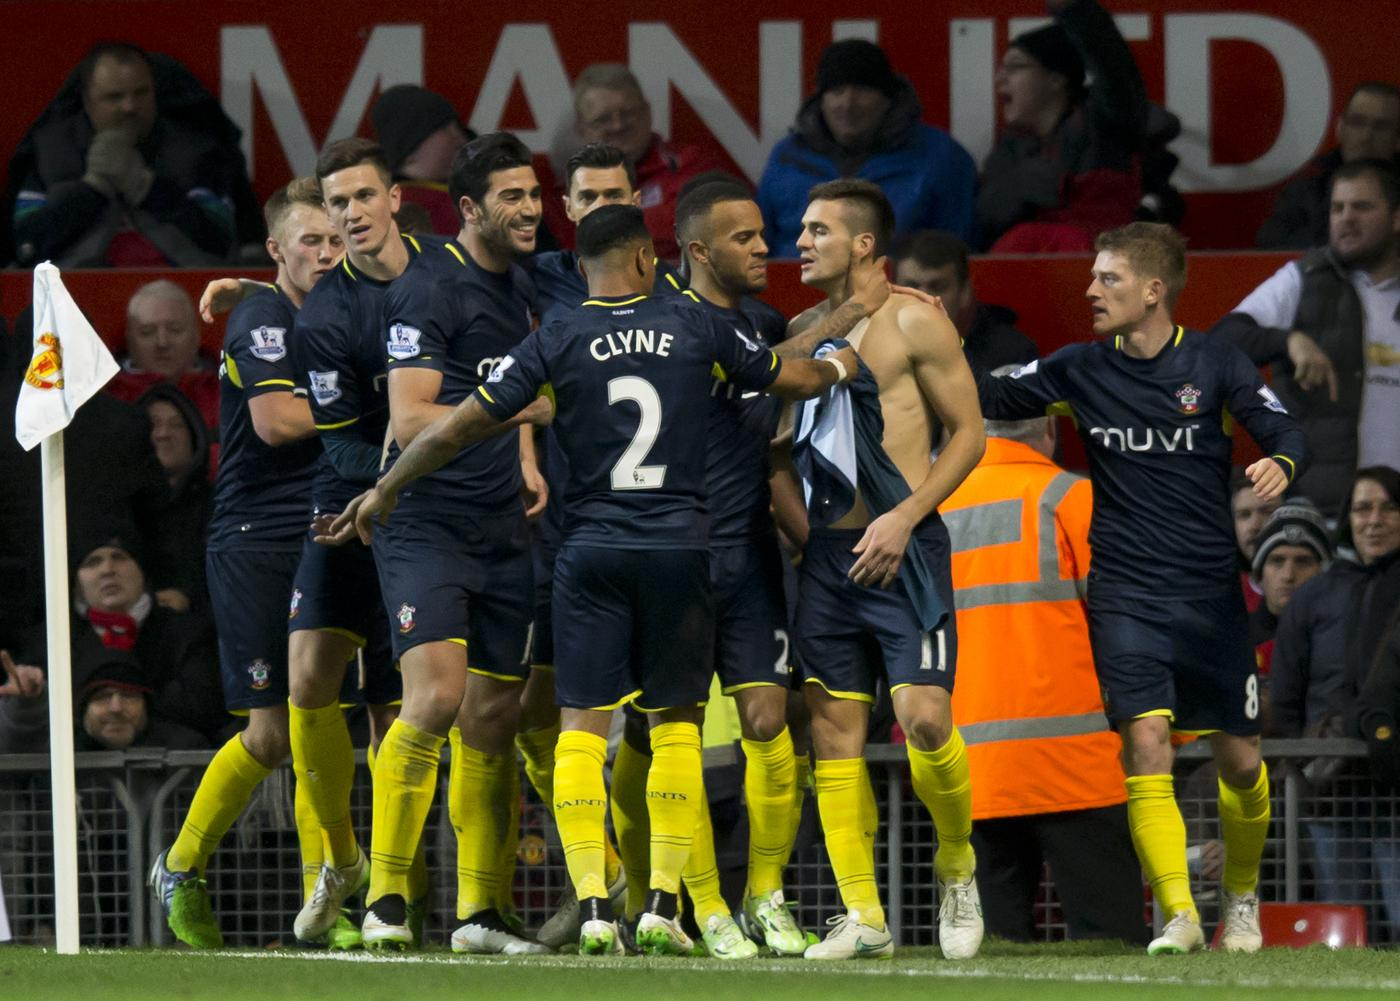 Man for man Southampton are simply better than Manchester United